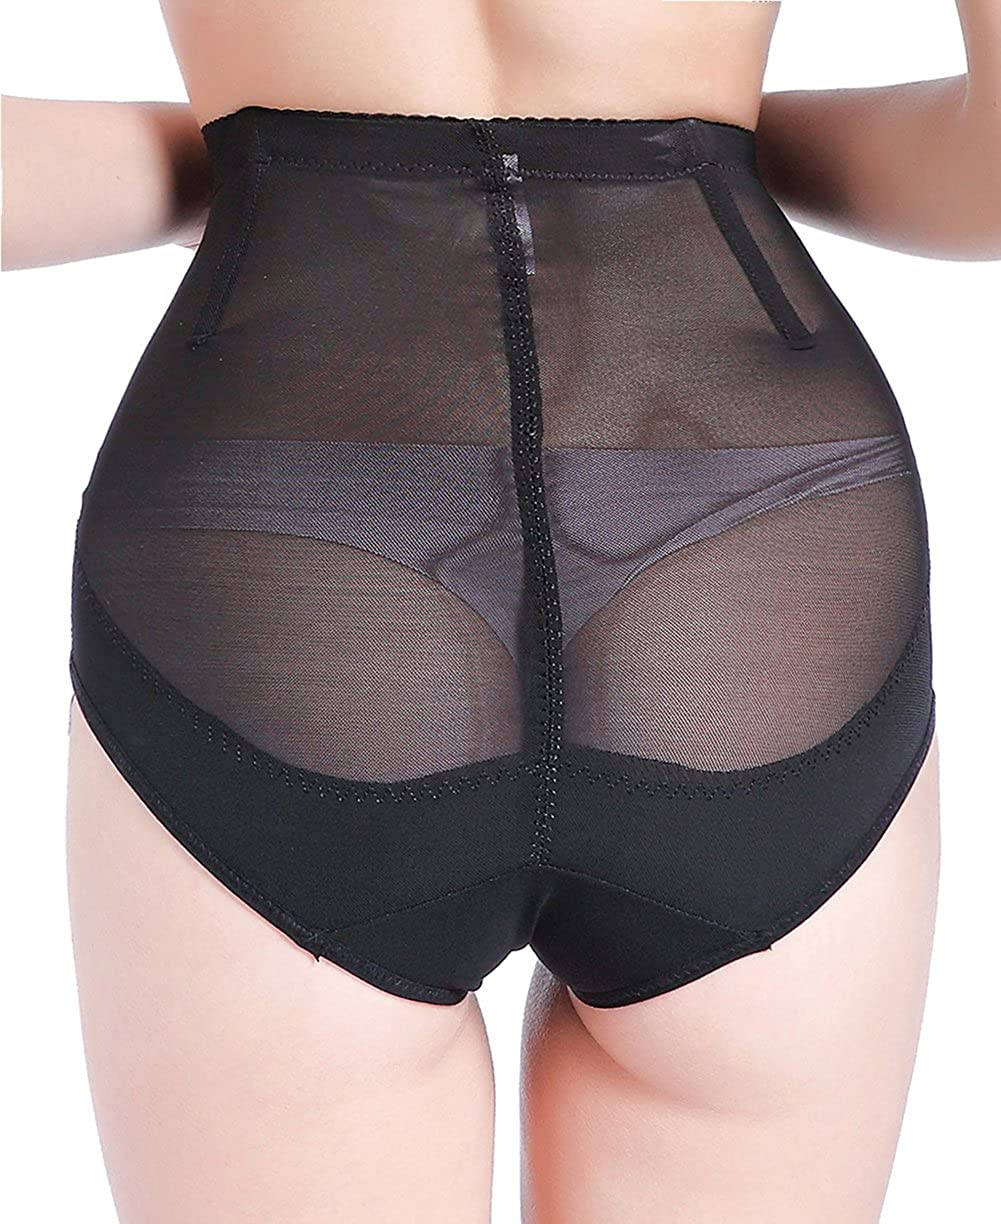 927068919ad3e Hioffer Invisable Strapless Body Shaper High Waist Tummy Control Butt  Lifter Panty Slim Underwear Shaper With Hook   Eye at Amazon Women s  Clothing store